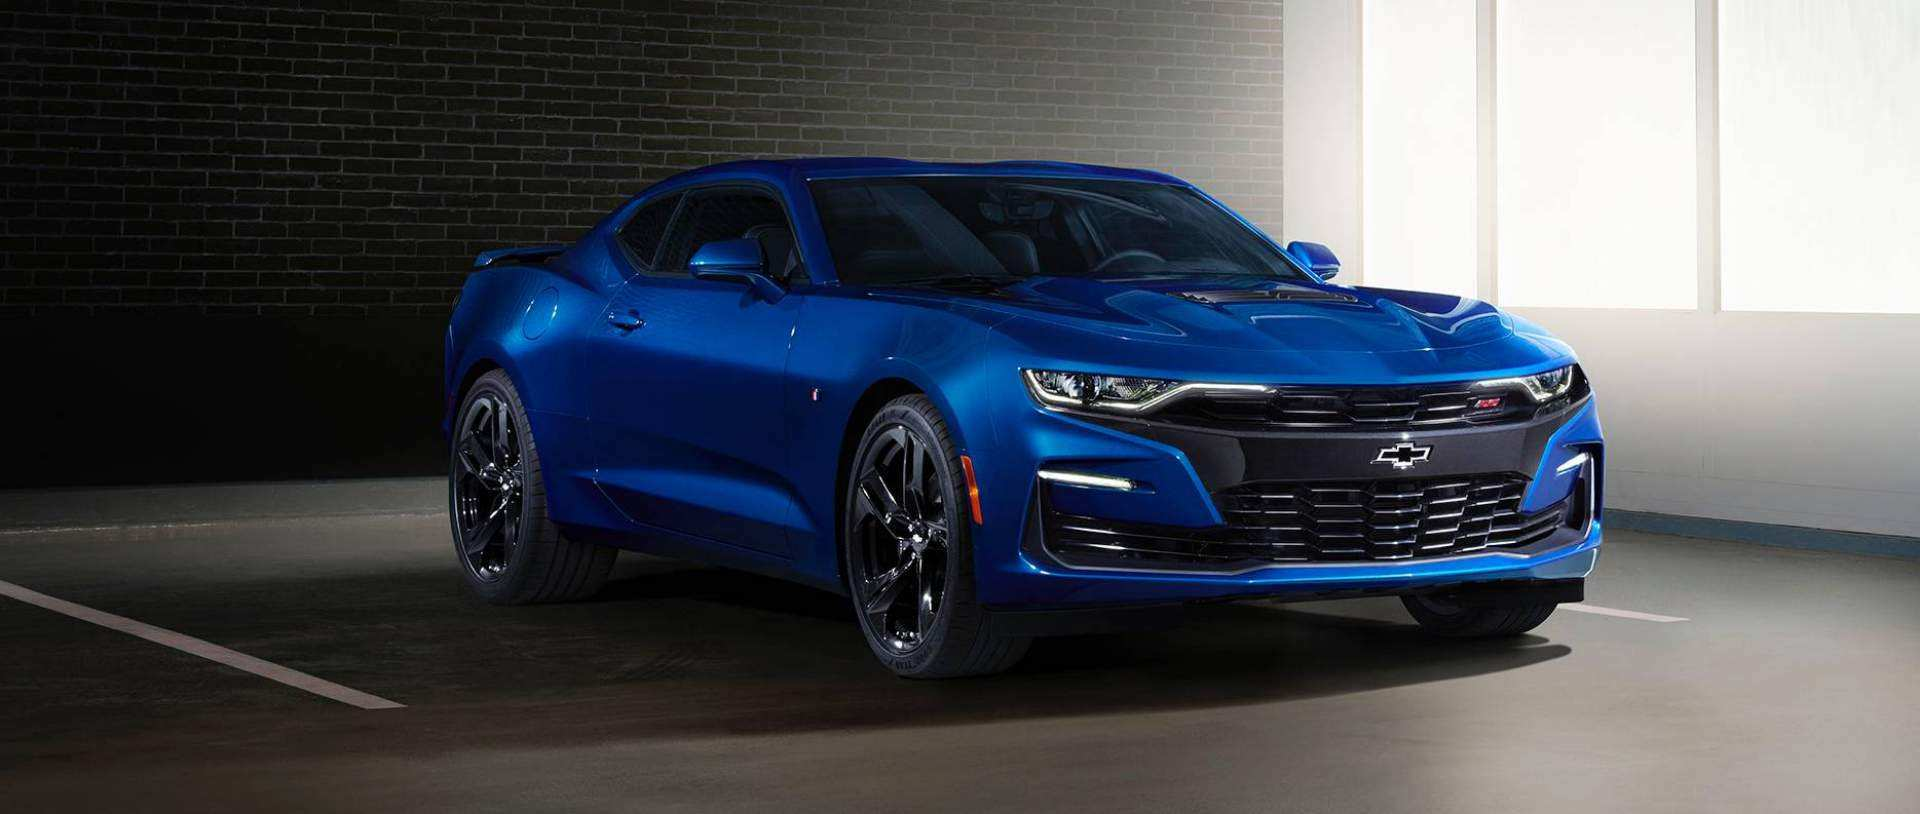 62 A Chevrolet Camaro 2020 Pictures Redesign And Concept